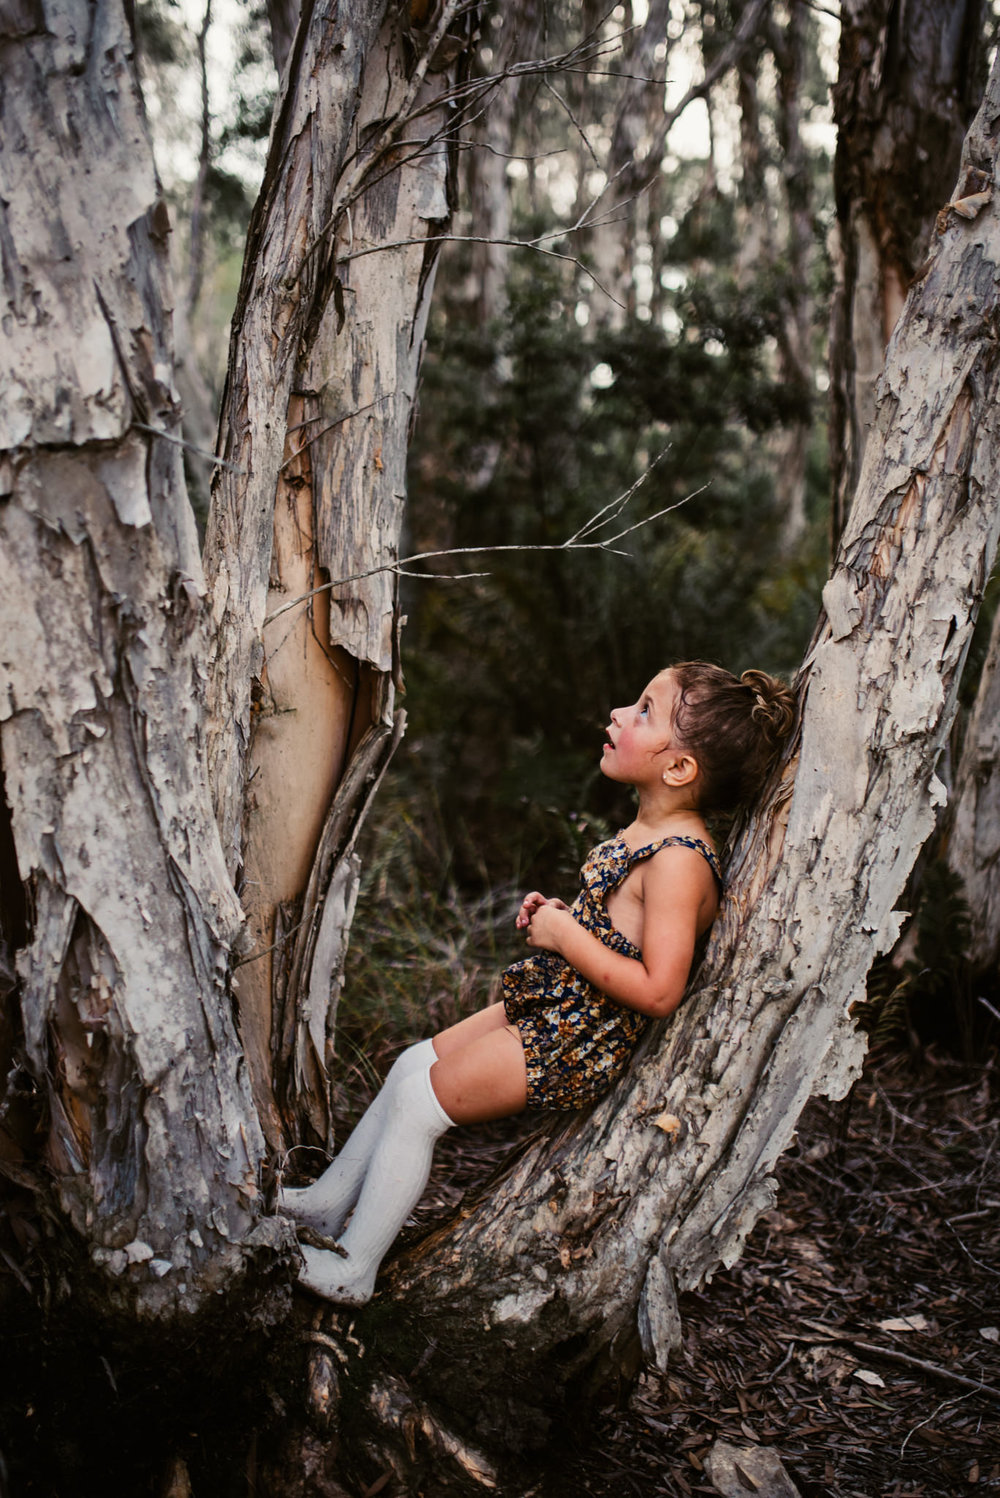 twyla jones photography - treasure coast florida - childrens adventure clothing commercial shoot--36.jpg